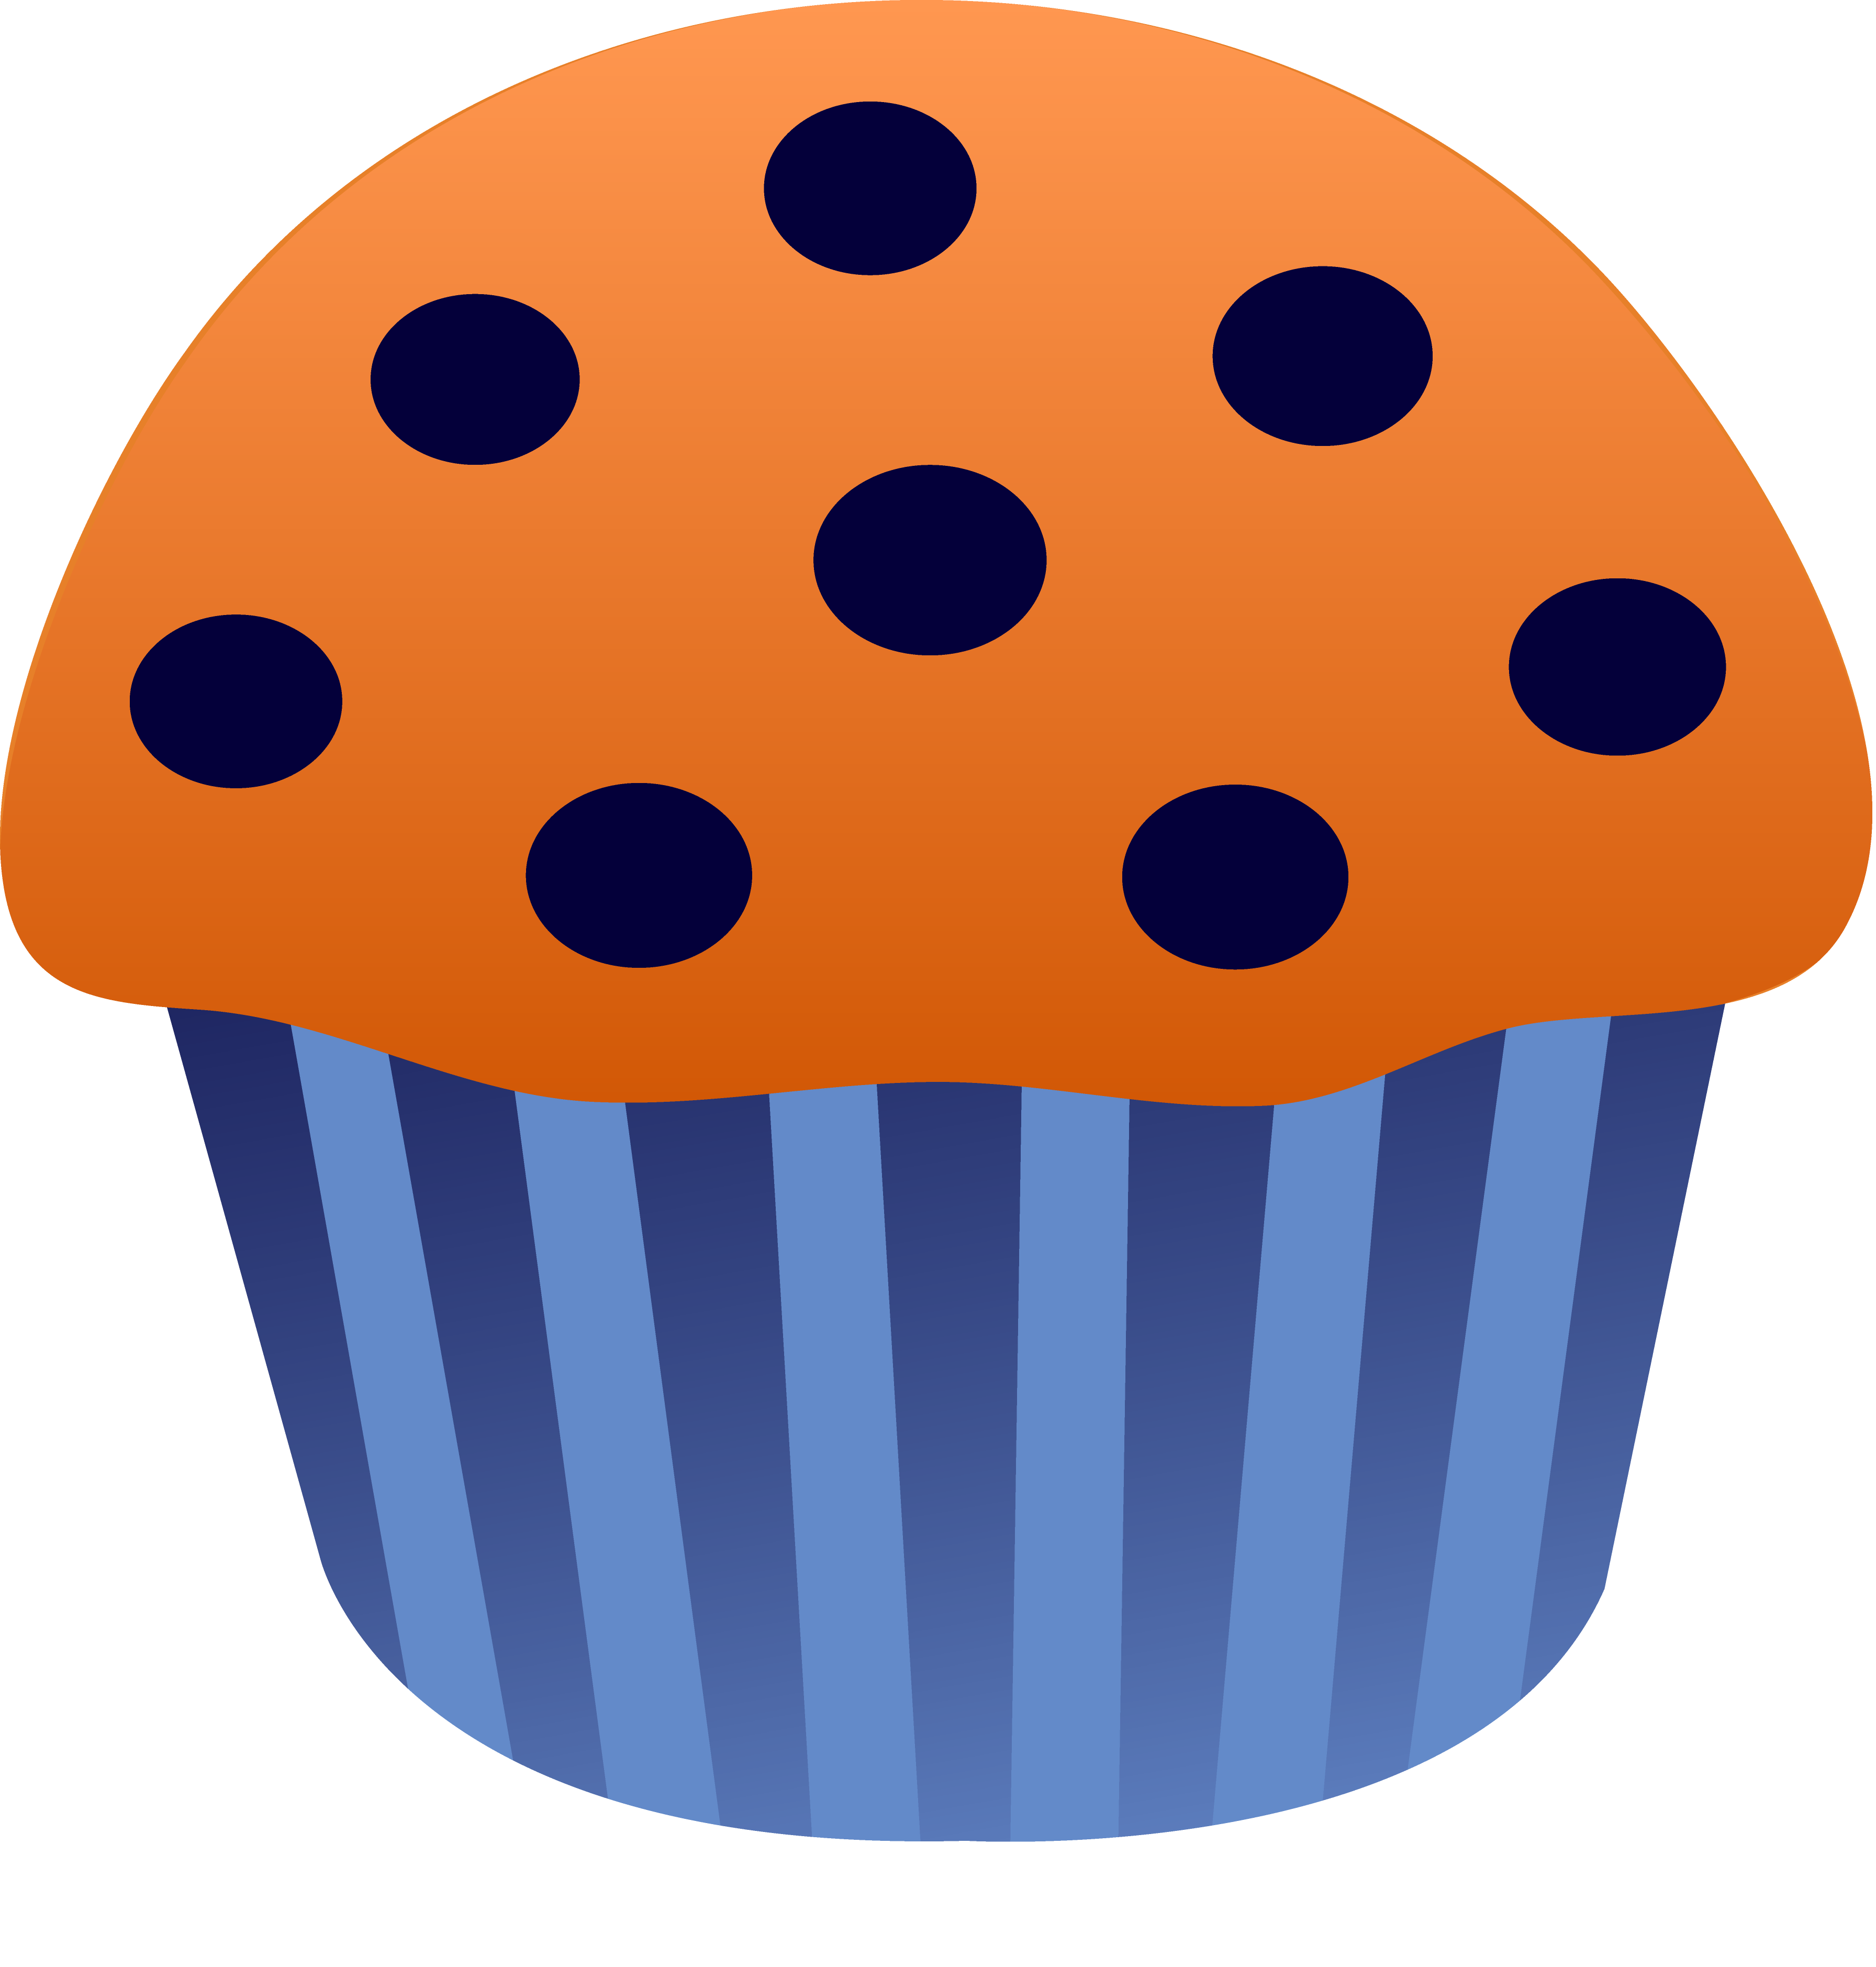 3584x3758 Blueberry Muffin Vector